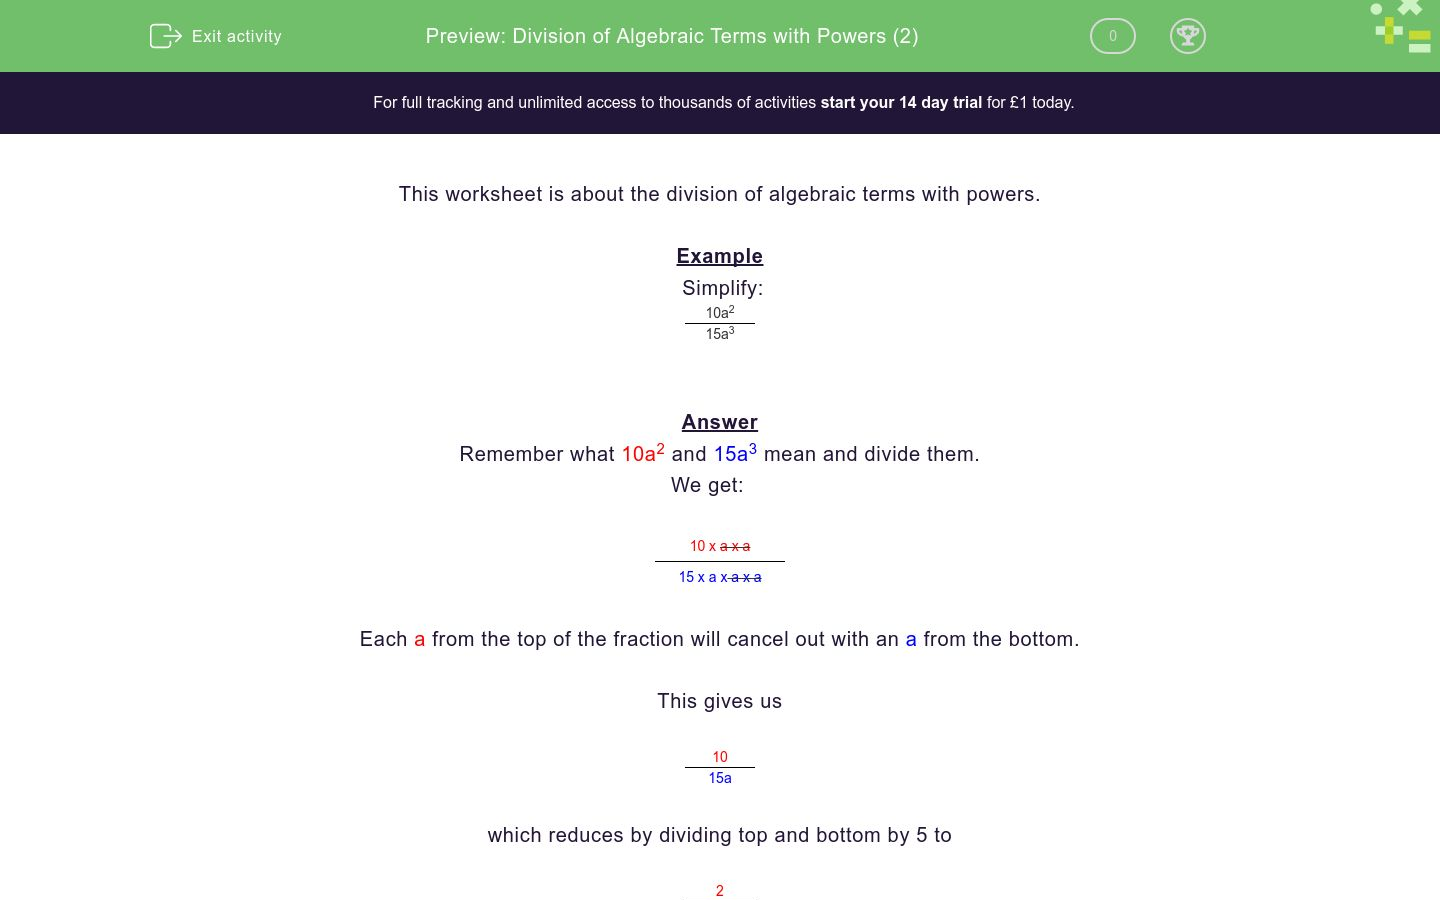 'Division of Algebraic Terms with Powers (2)' worksheet